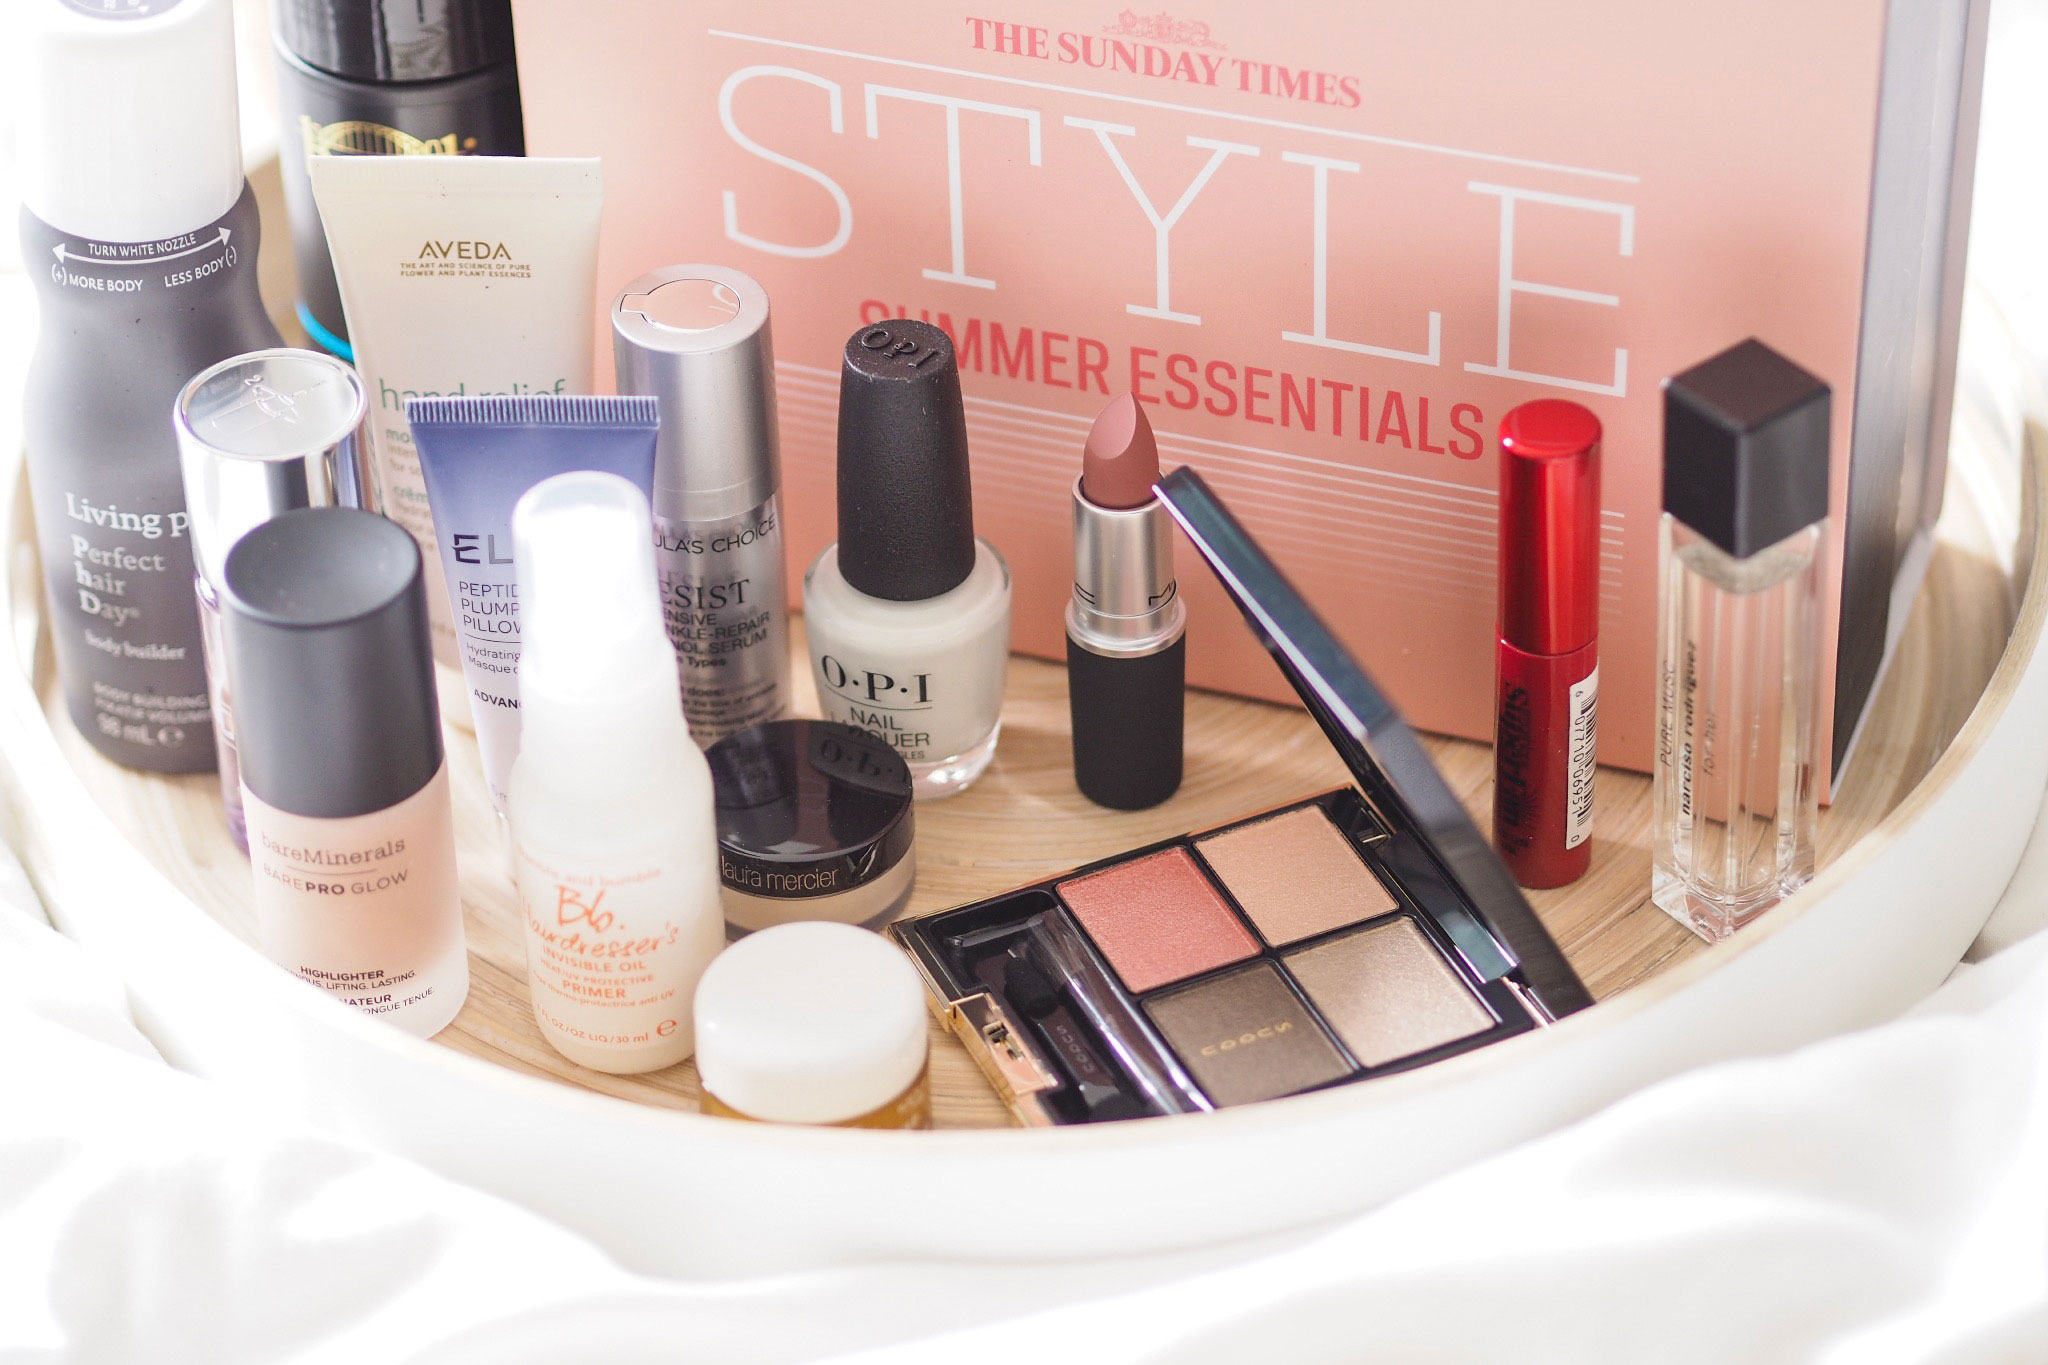 Latest In Beauty & The Sunday Times Style Box